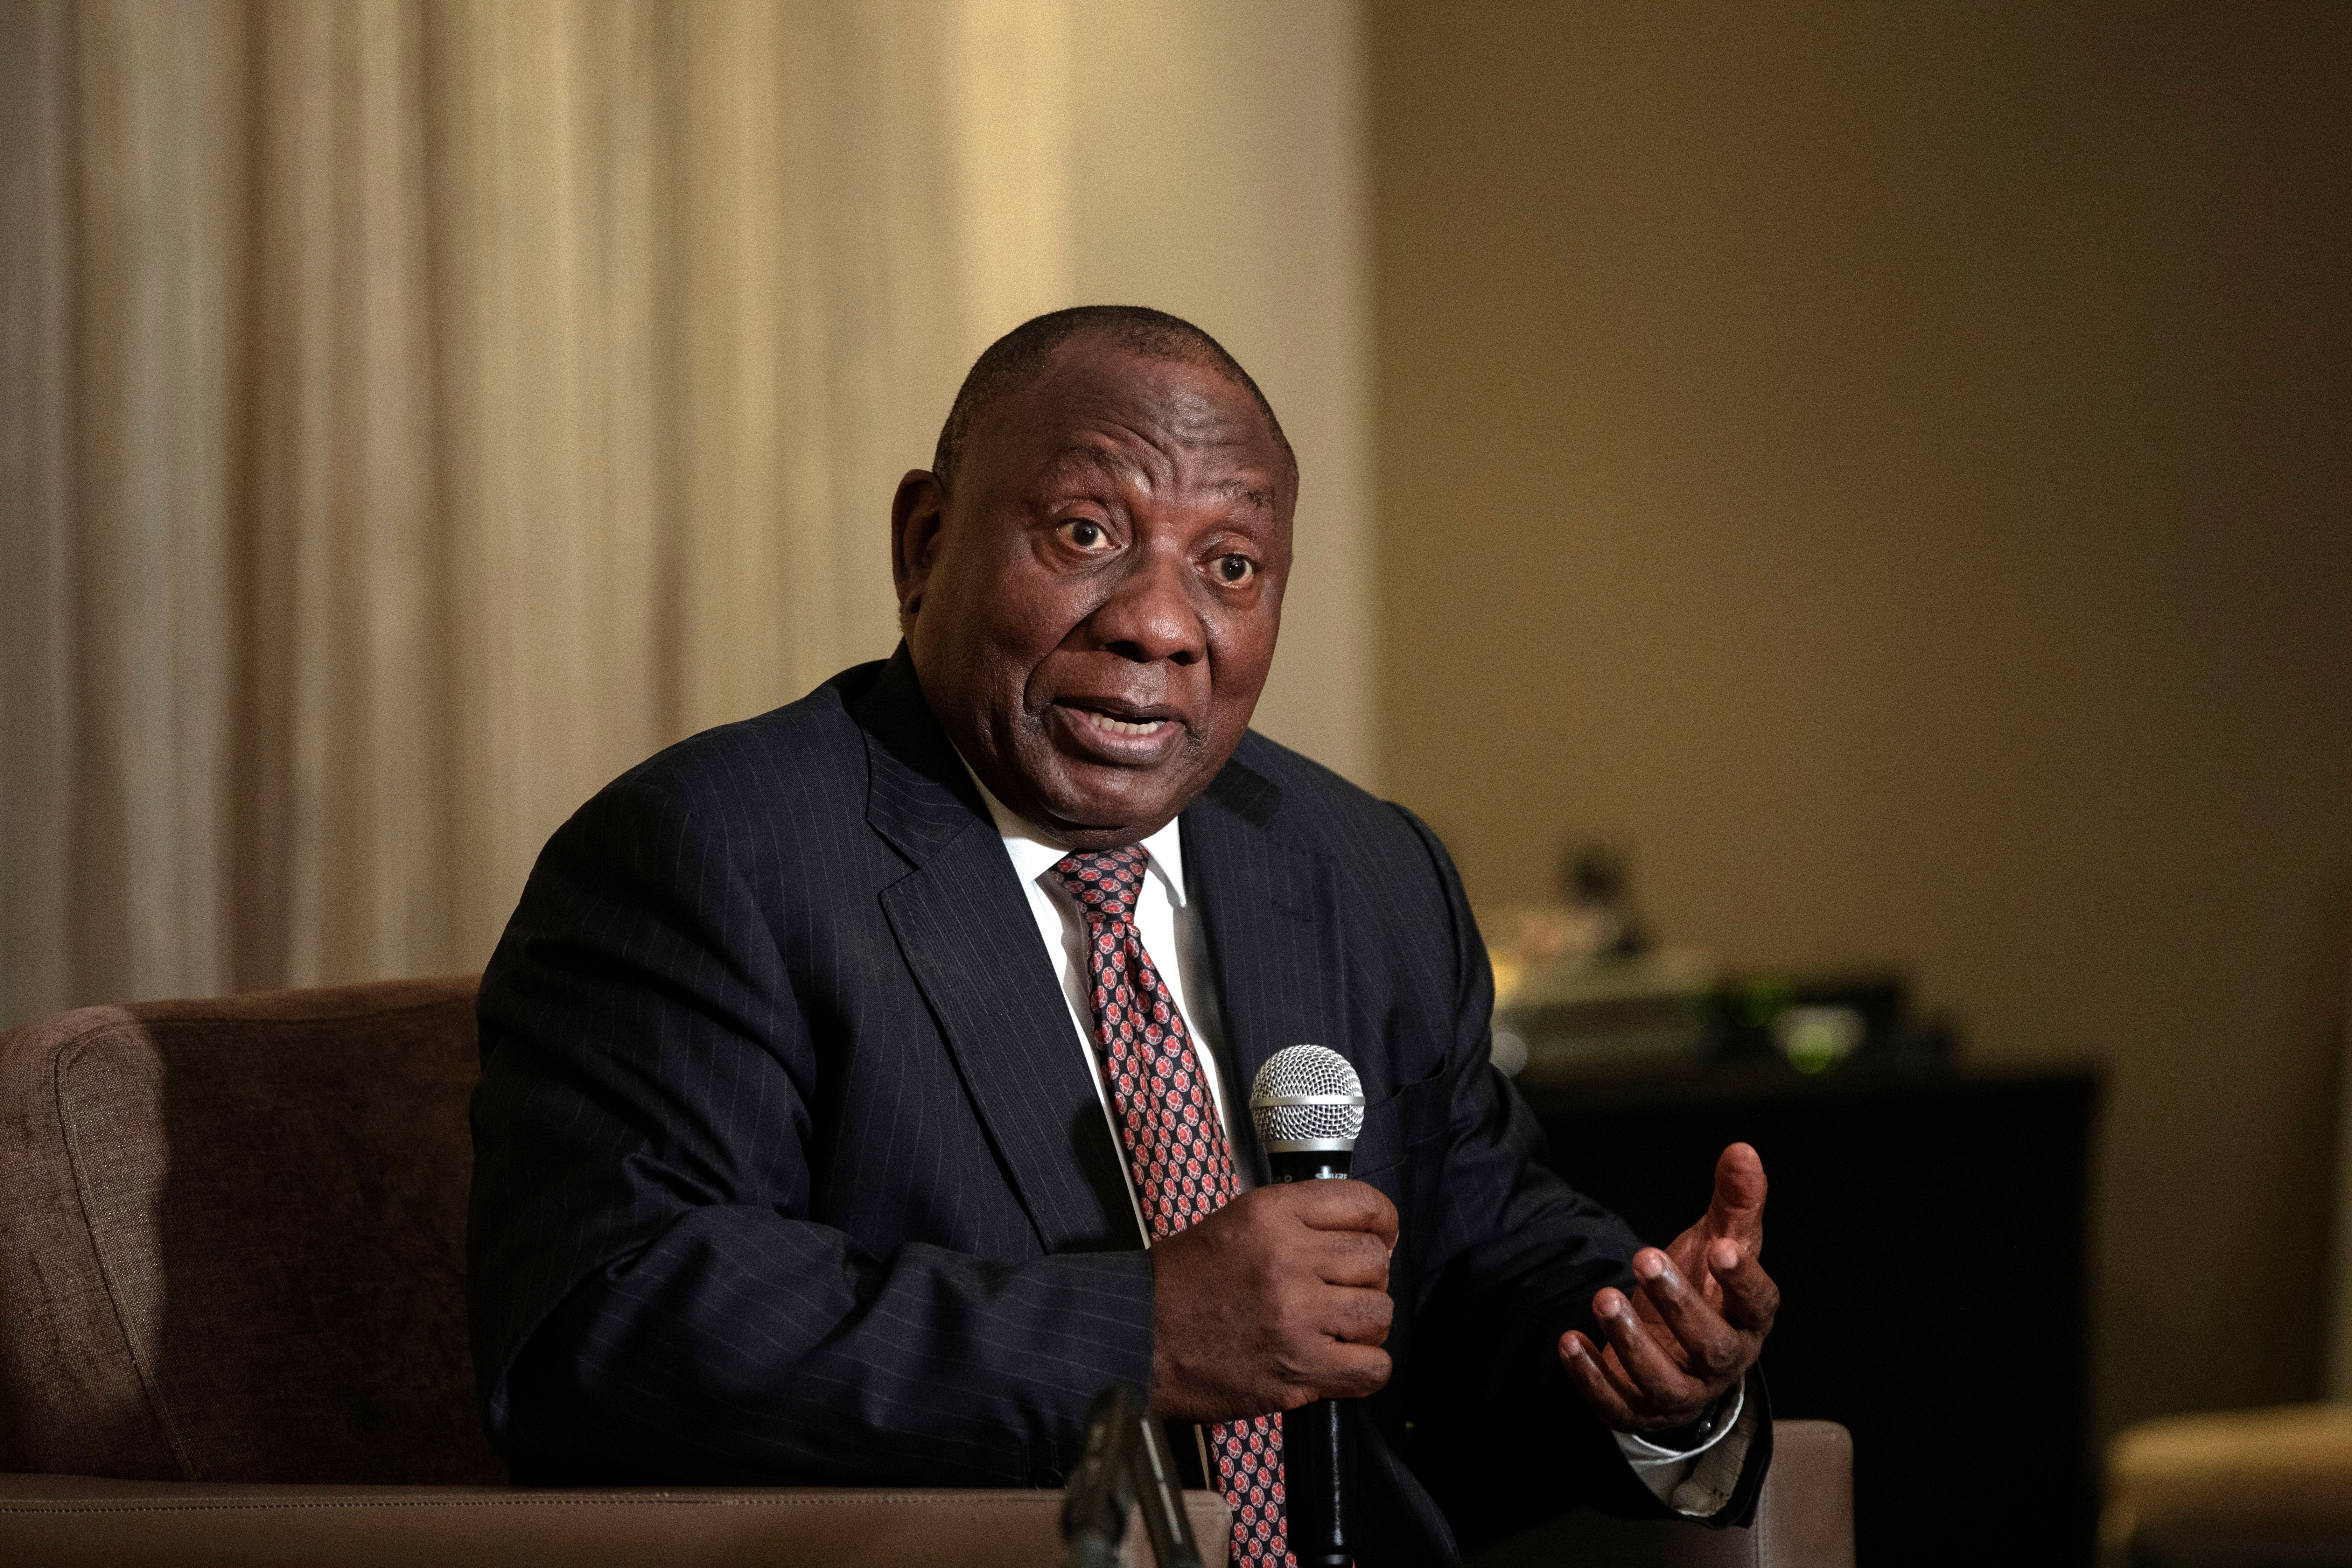 South African President Cyril Ramaphosa in Rosebank, Johannesburg, South Africa, on Nov. 1, 2018. The country's parliament broke into a brawl during a question-and-answer session with President Ramaphosa on Tuesday.